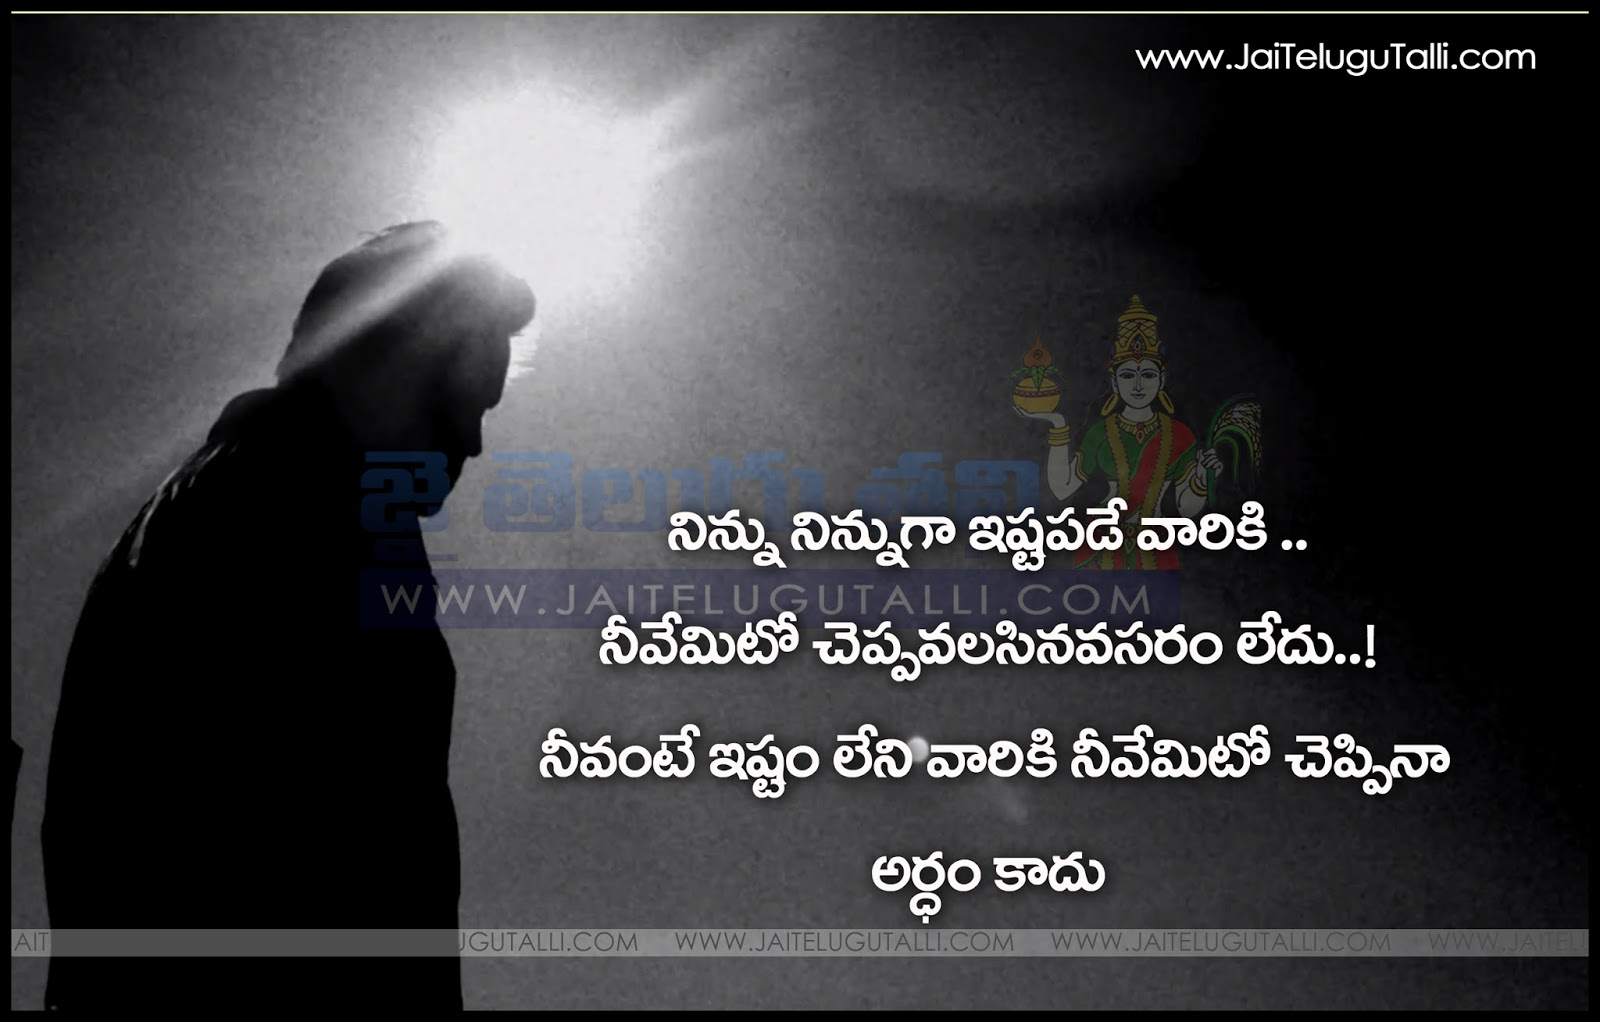 Telugu Quotes And Life Motivation Quotes In Telugu Images Www